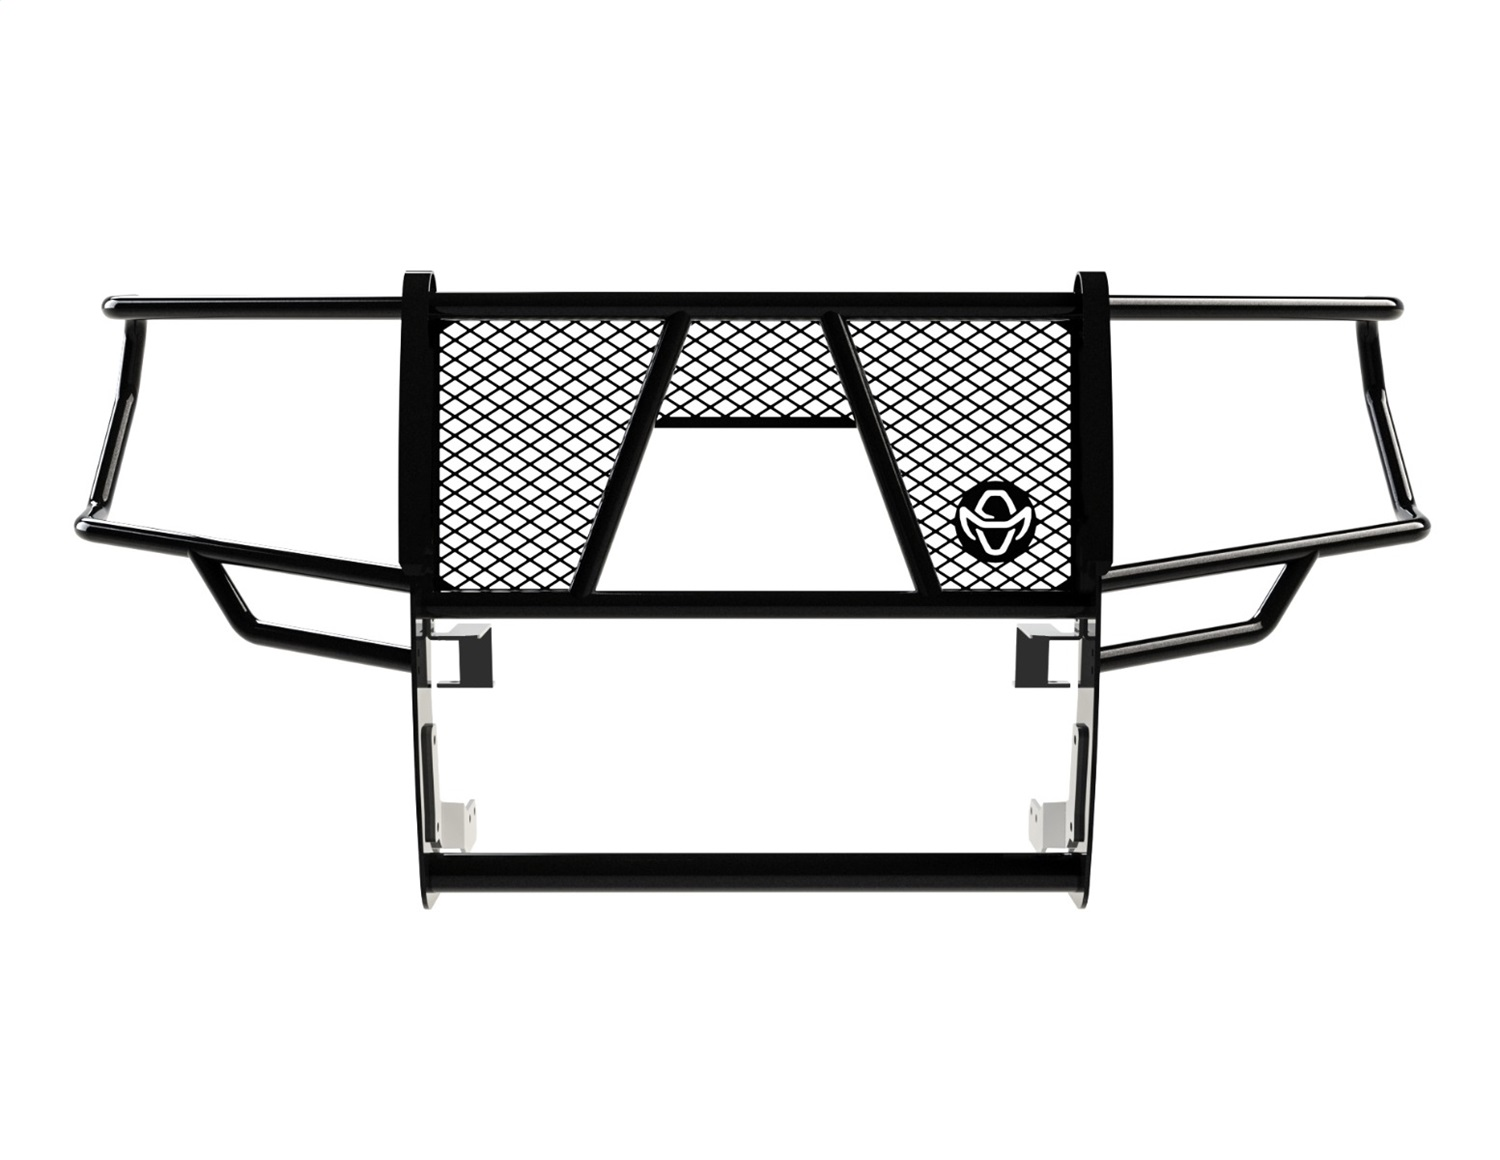 Legend Series Grille Guard, Retains Factory Tow Hook And Fog Lights, w/Camera Assist, Must Use PSG19HBL1 For Sensors